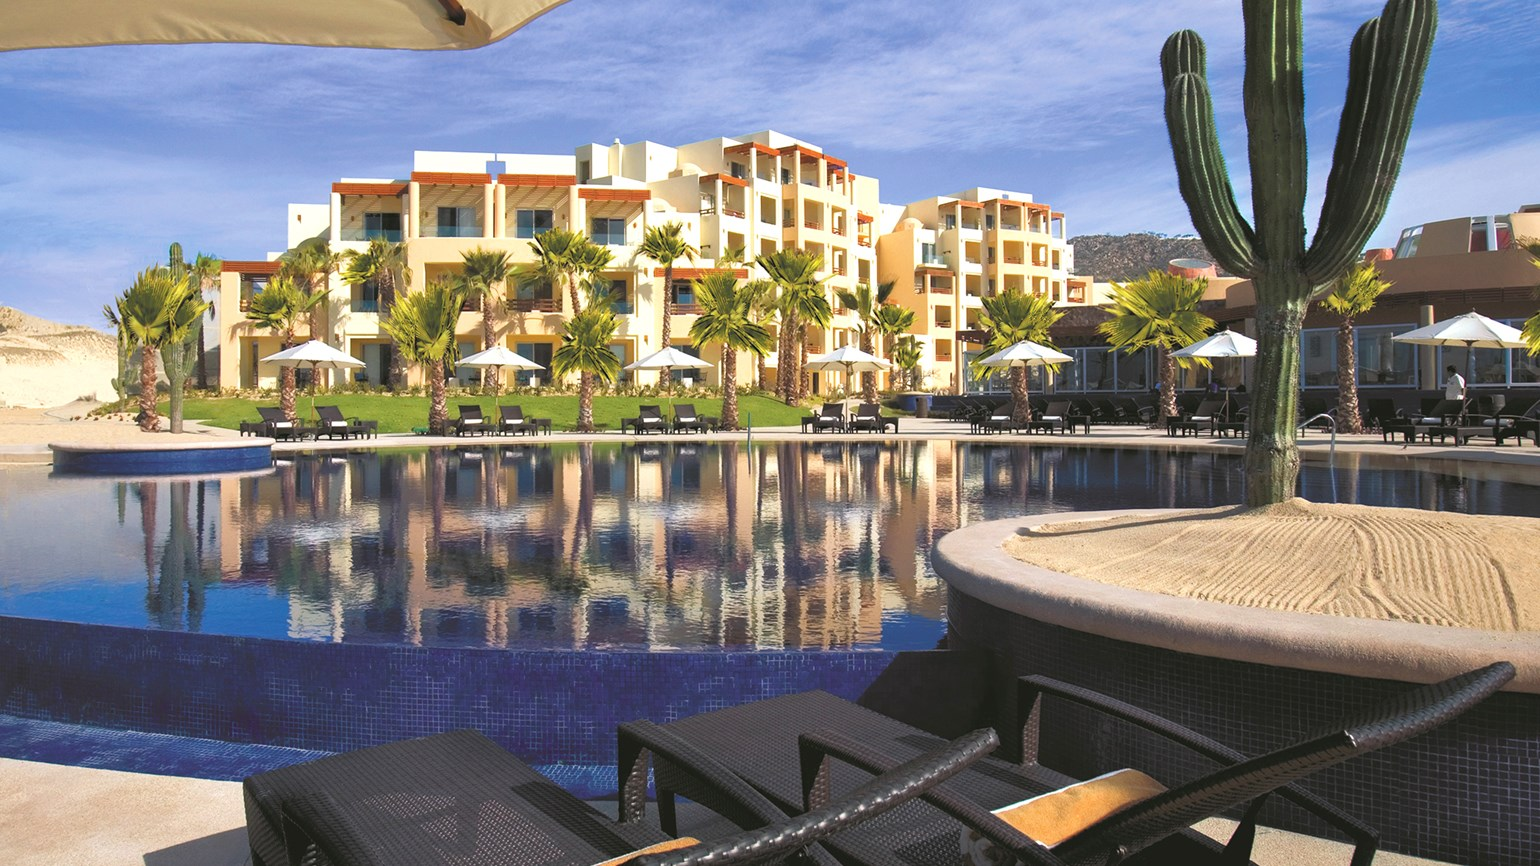 Los Cabos resort plans expansion